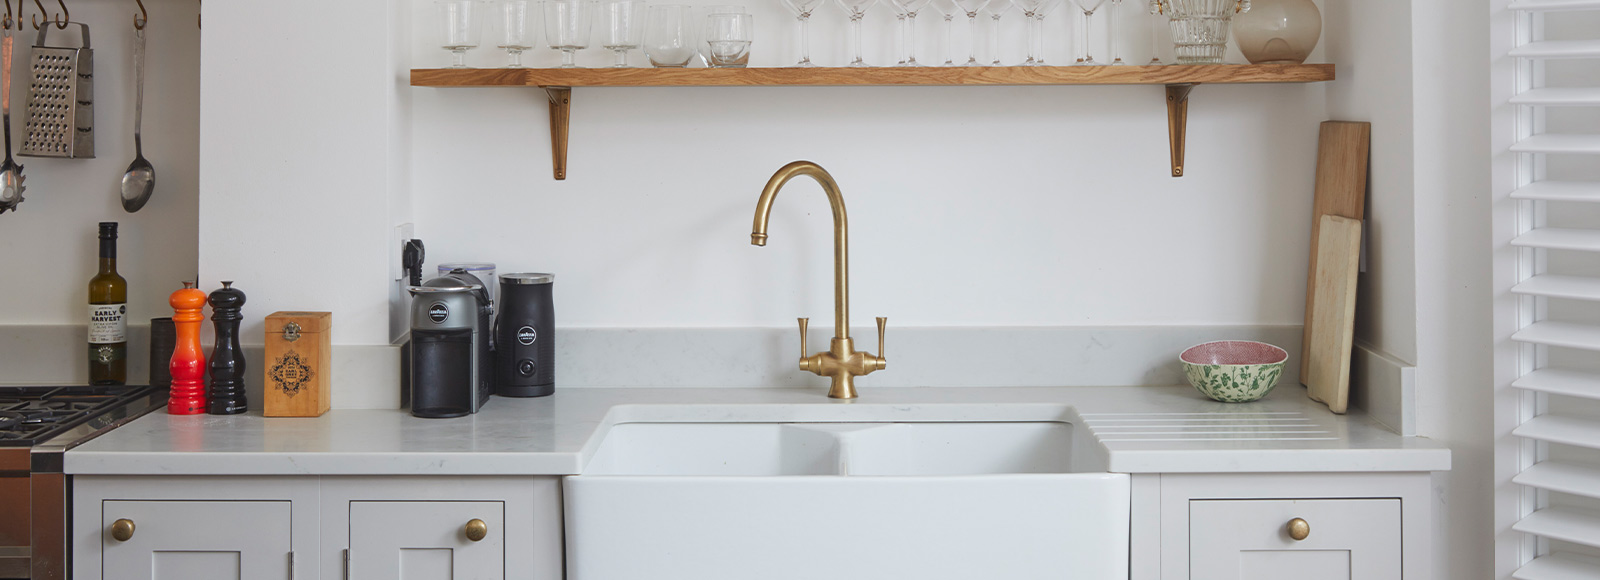 Light grey kitchen with large sink, gold tap and wooden shelf